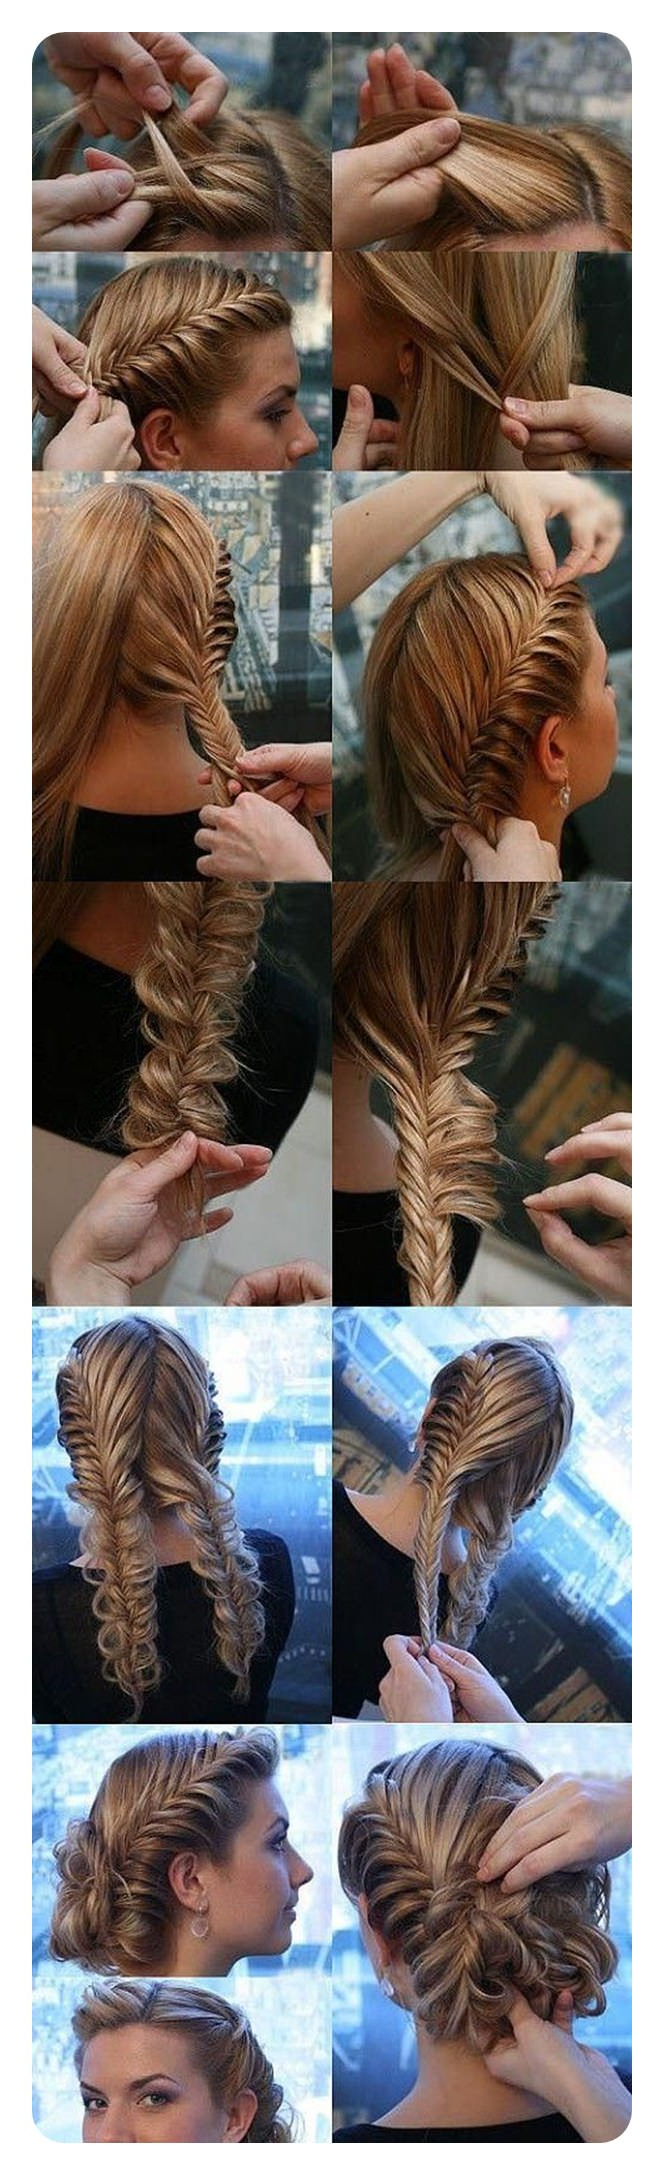 94 Incredible Fishtail Braid Ideas With Tutorials Intended For Favorite Messy Mermaid Braid Hairstyles (View 2 of 20)